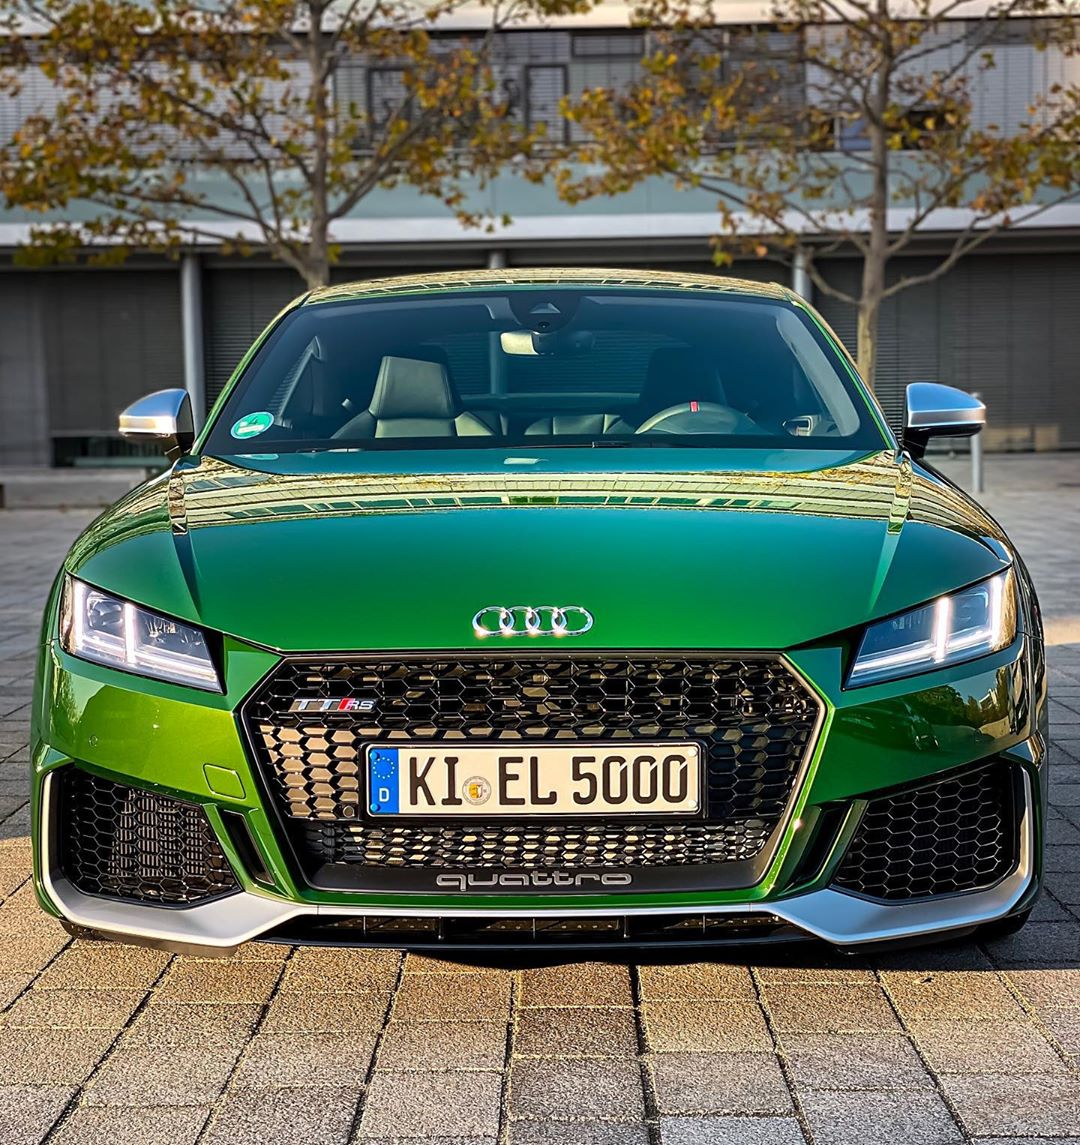 OMG😱…we just collected another AUDI today🙈…KI:EL5000 is dead! Long live KI:EL 5000 as the facelifted TTRS in stunning Audi exclusive Sonomagreen👊 @audi_de @audisport #audisport #ttrs #audittrs #ttrsfacelift #rs #sonomagrün #sonomagreen #automannsgarage #automanntv